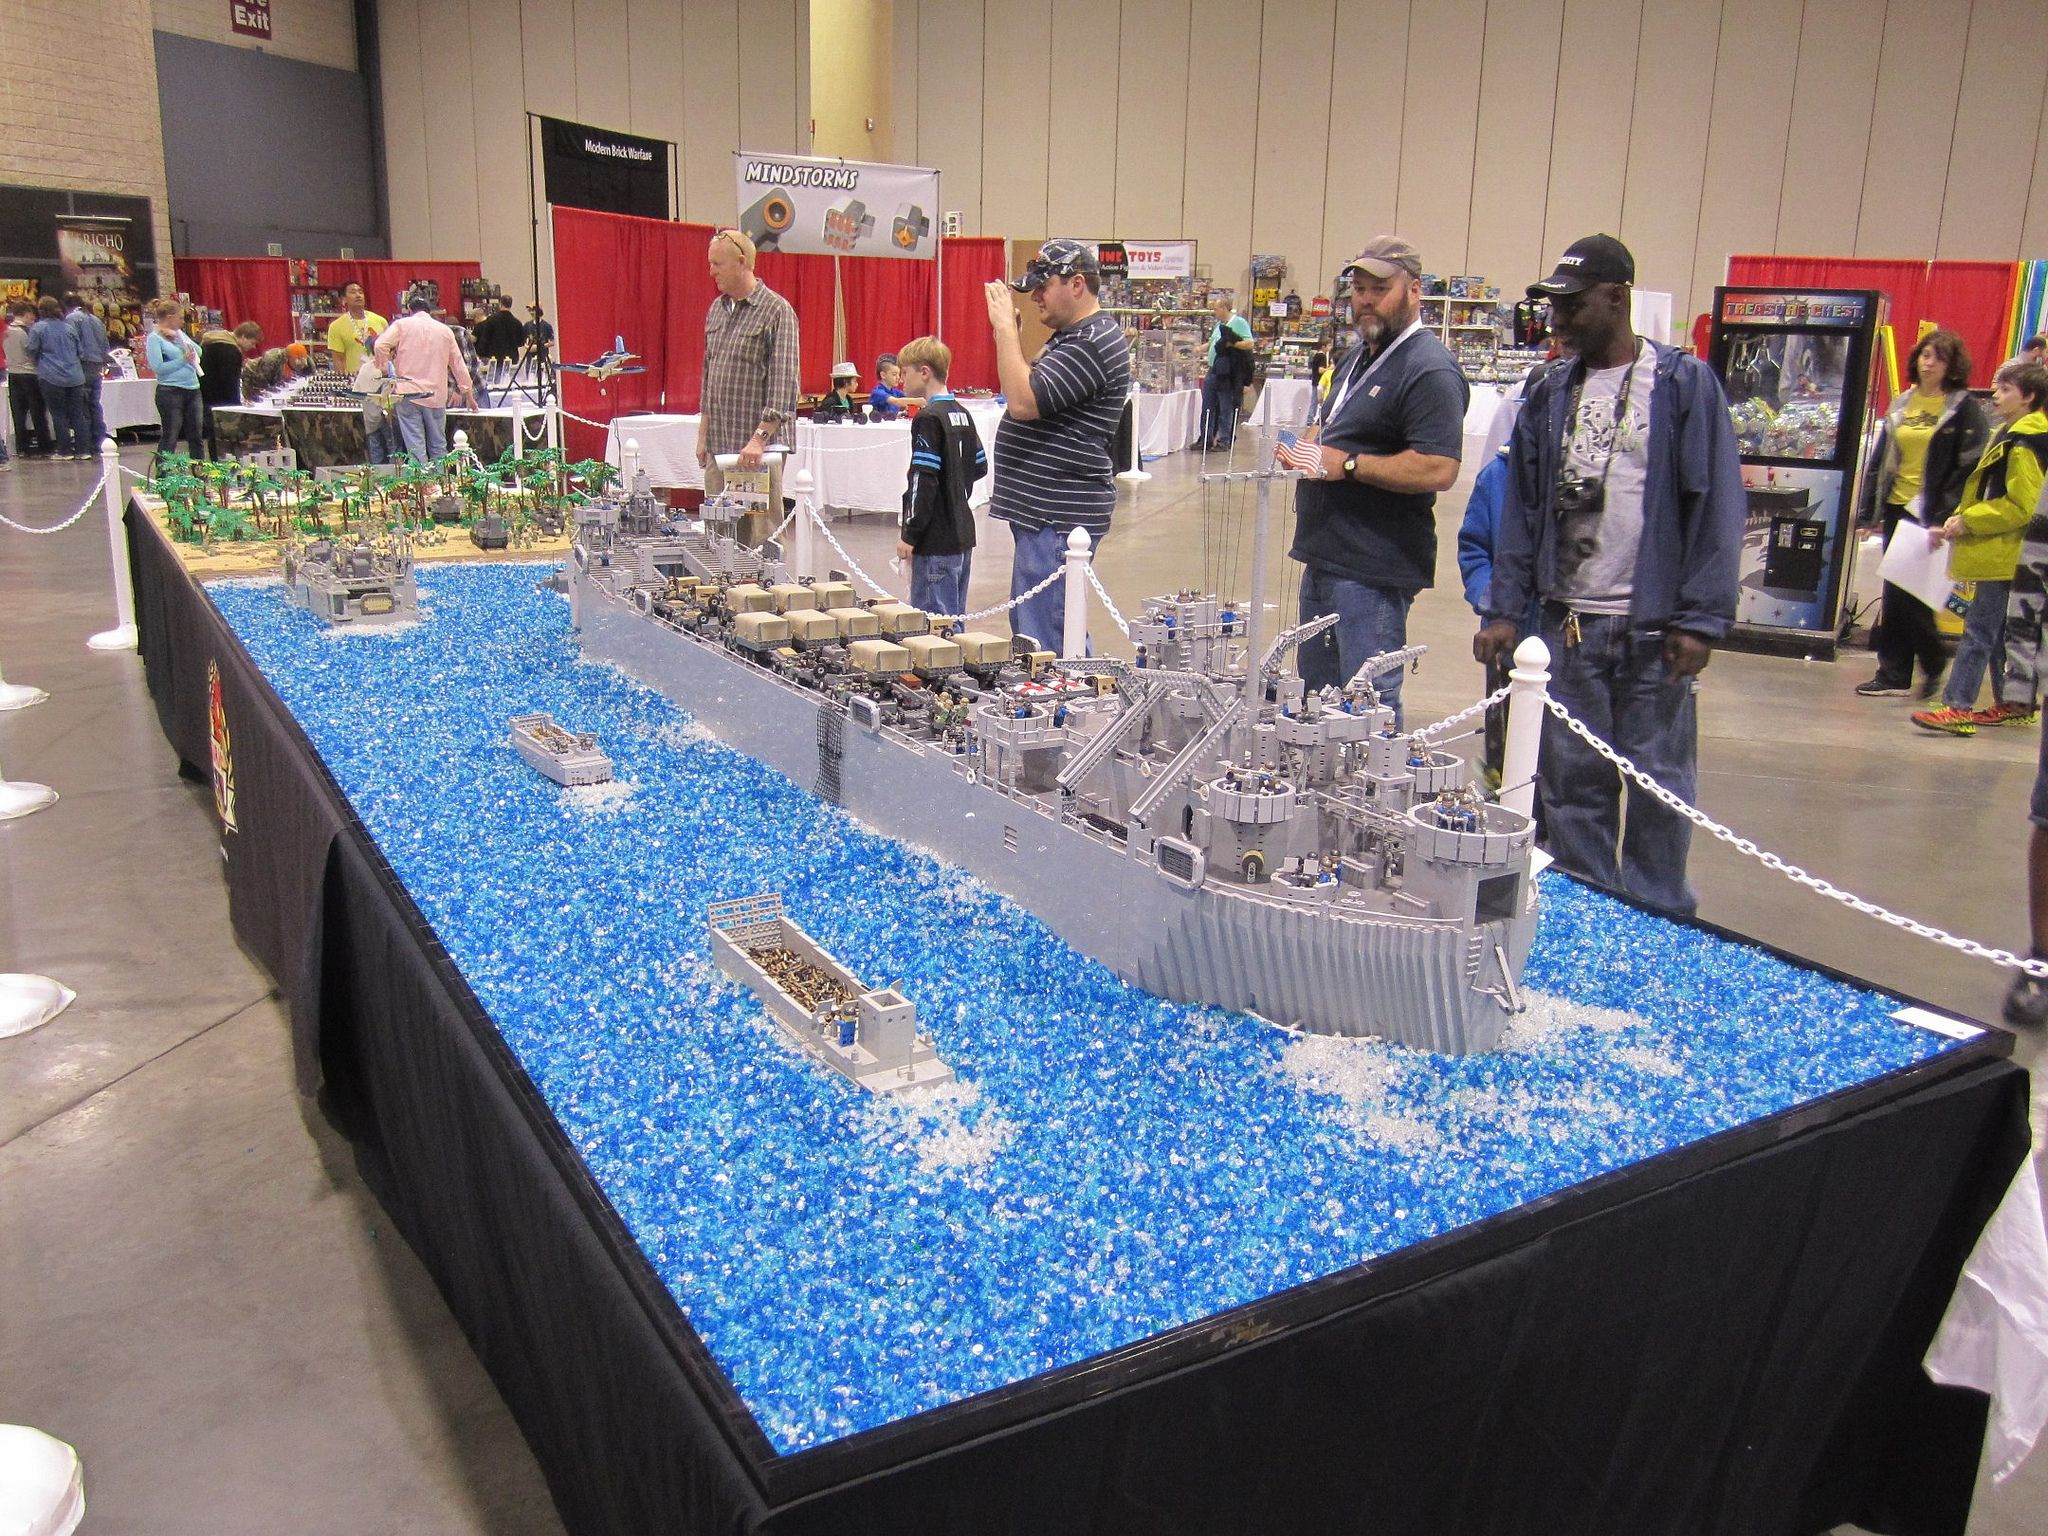 "https://flic.kr/p/jdubzP | Battle of Peleliu | The US Marines stormed the beaches of Peleliu in 1944 as part of McArthur's campaign to liberate the Philippines from Japanese occupation. This display was built during 2013 and is shown here at BrickFair Birmingham in January 2014. It was voted ""Most inspiring"" creating by the event attendees."